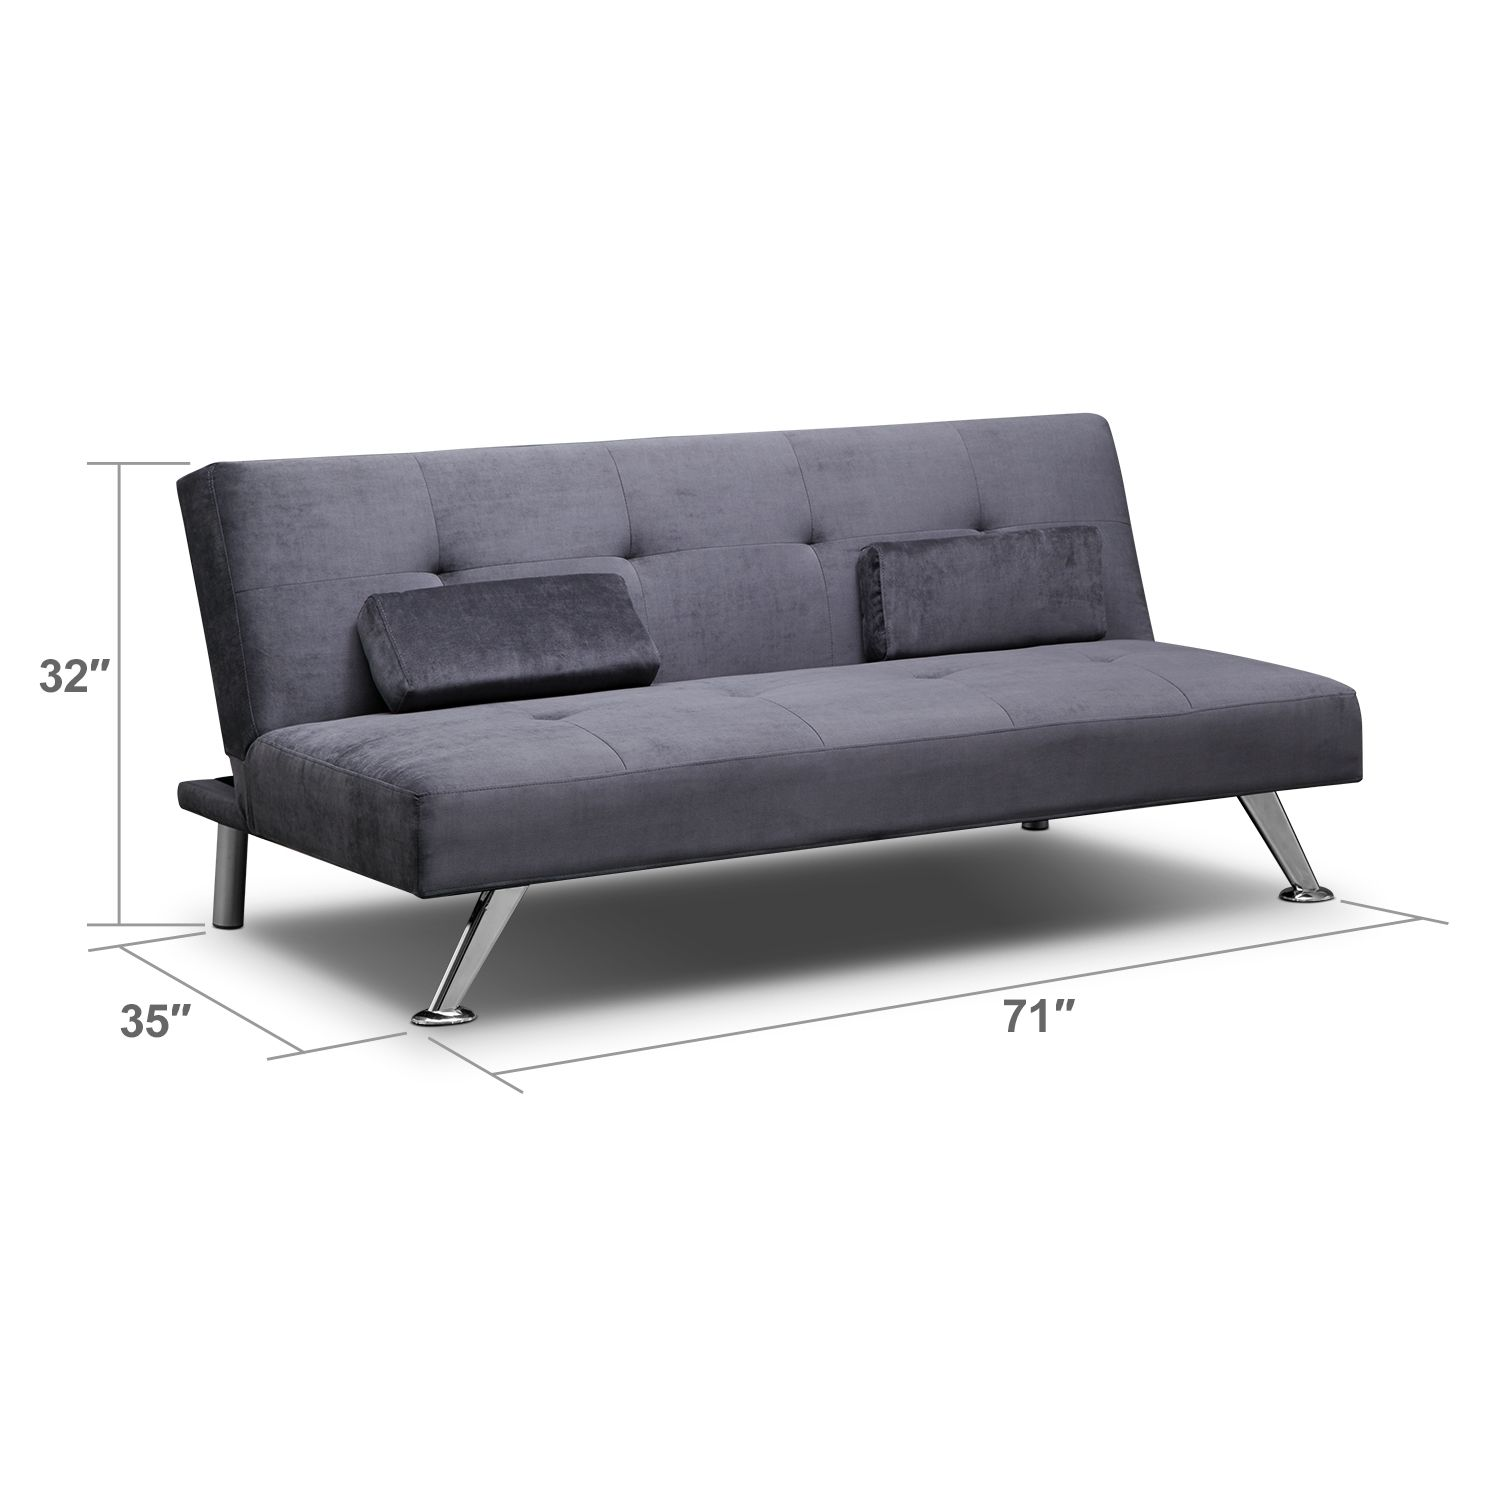 Marlene Futon Sofa Bed Value City Furniture Sofa Cama